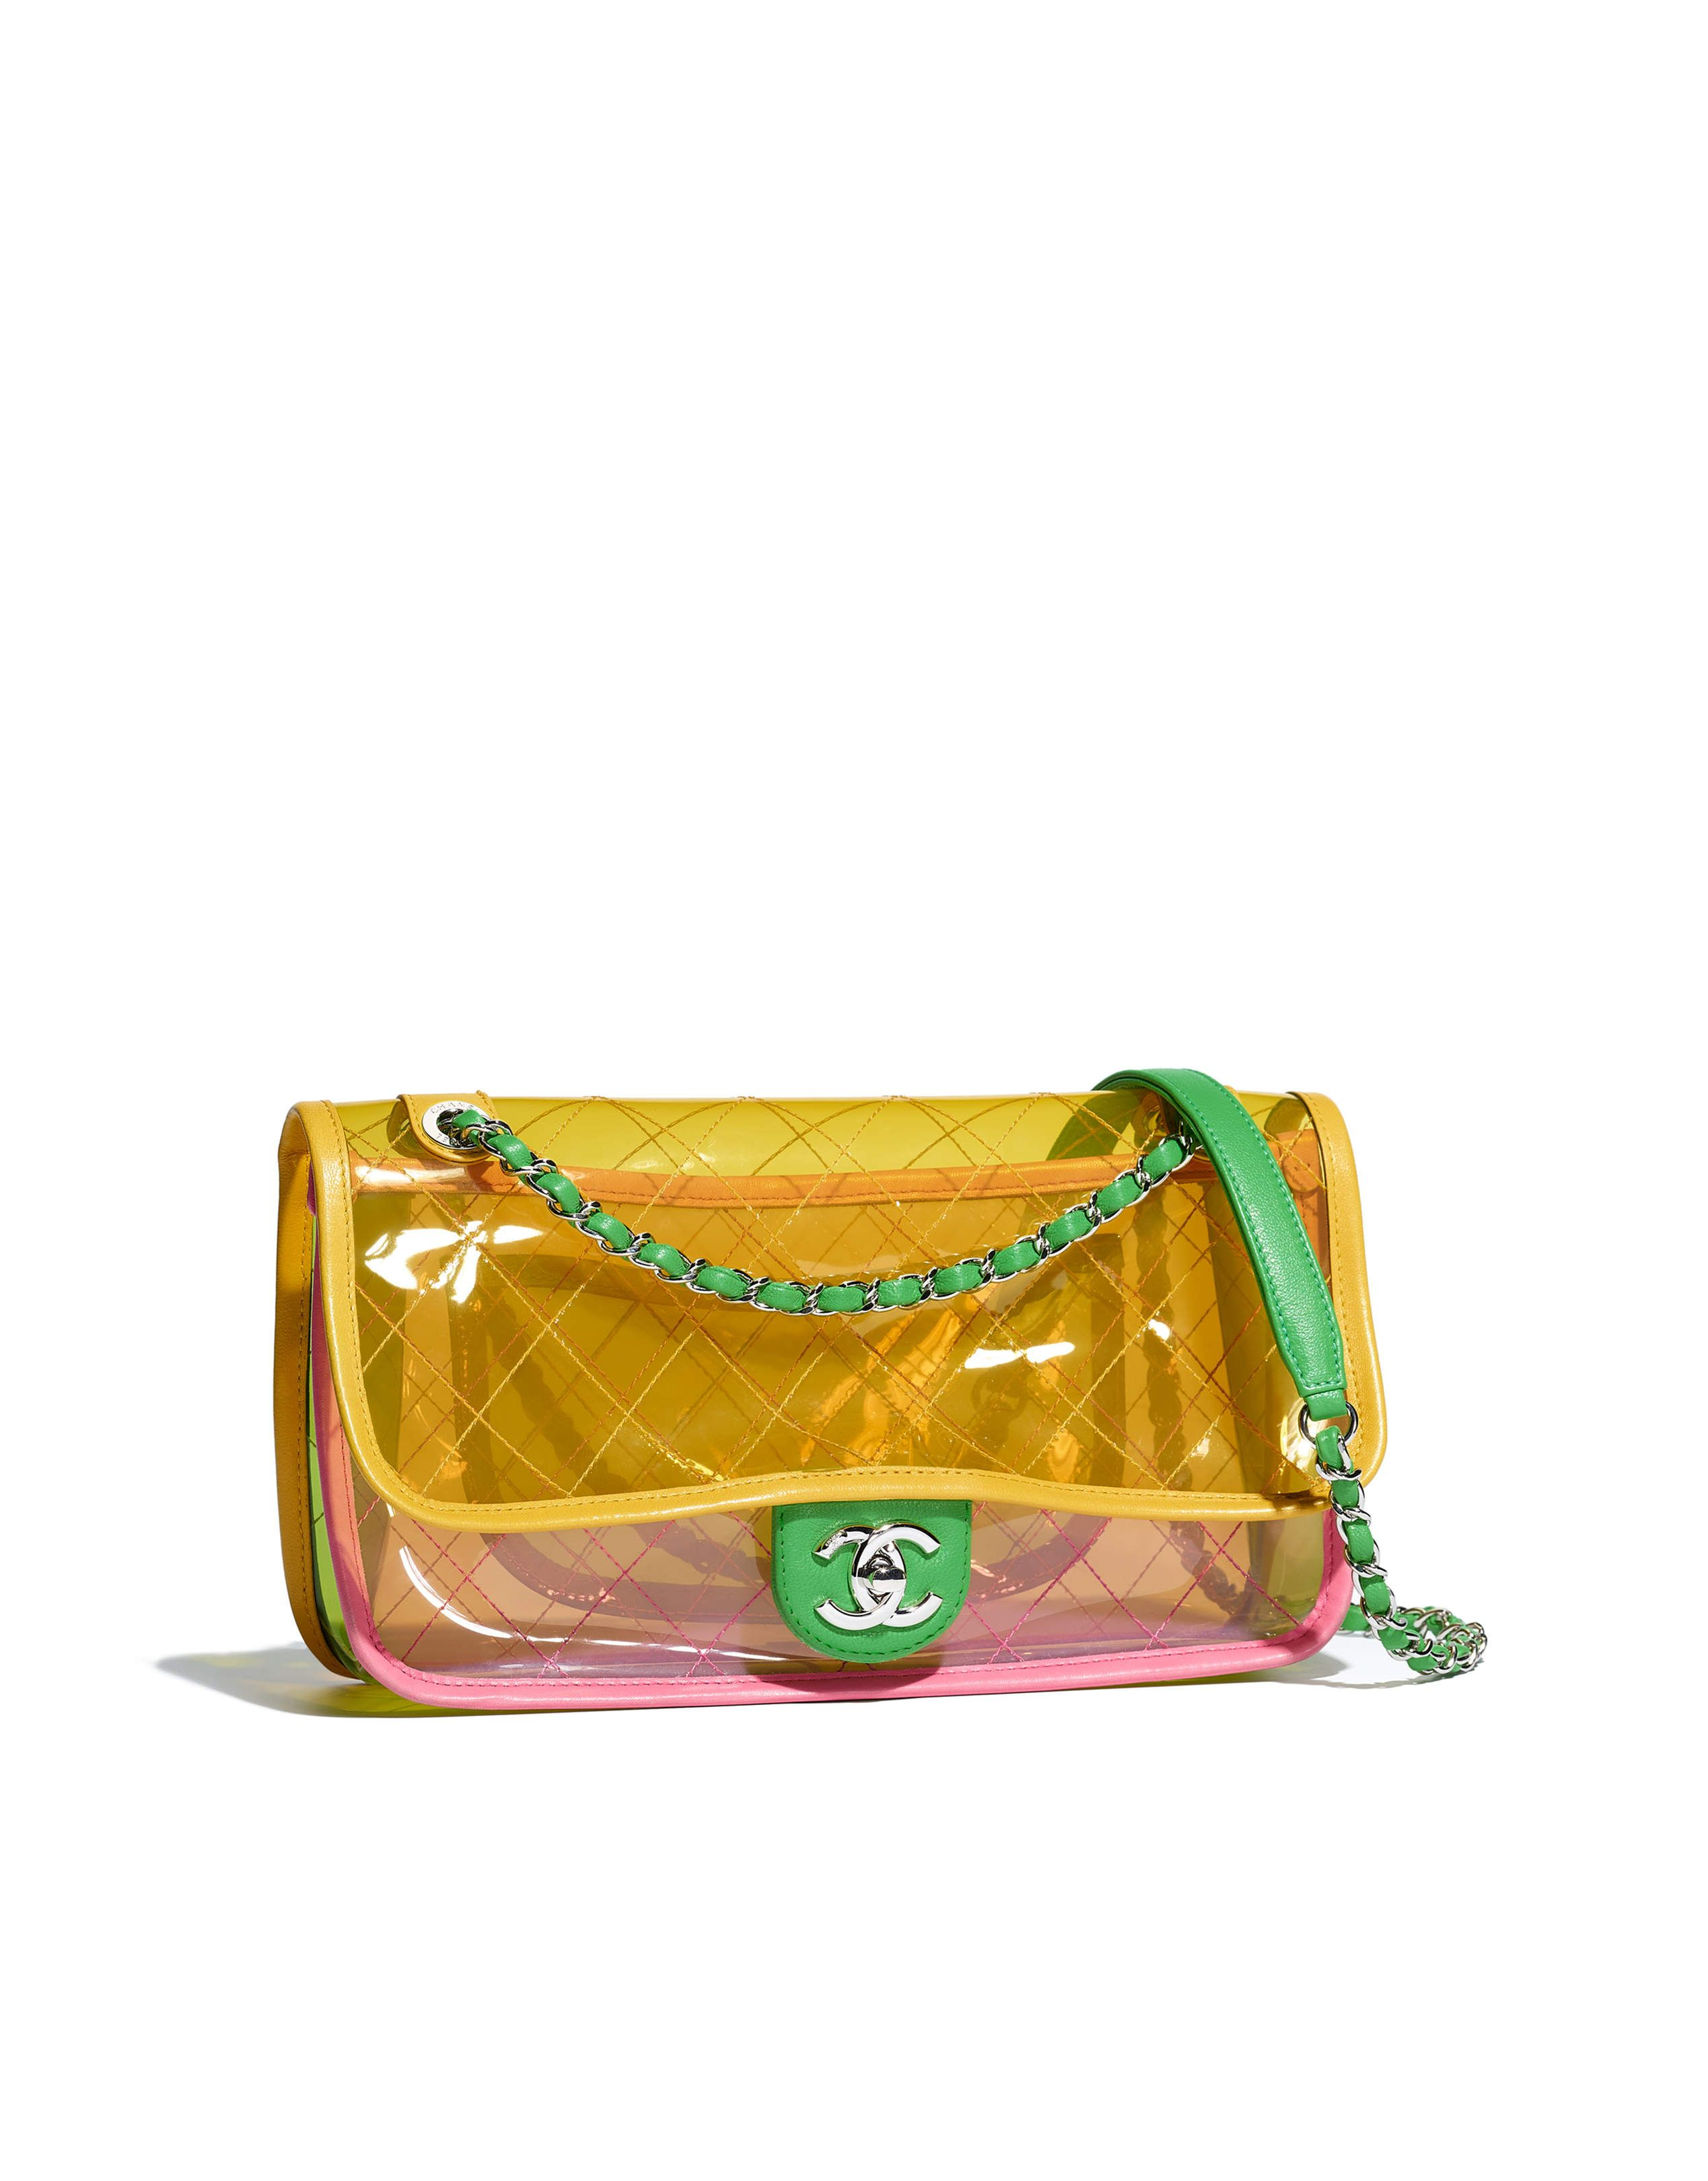 4fa0f079 Chanel - SS2018 | Pink & yellow PVC flap bag | BAGS | Vintage chanel ...